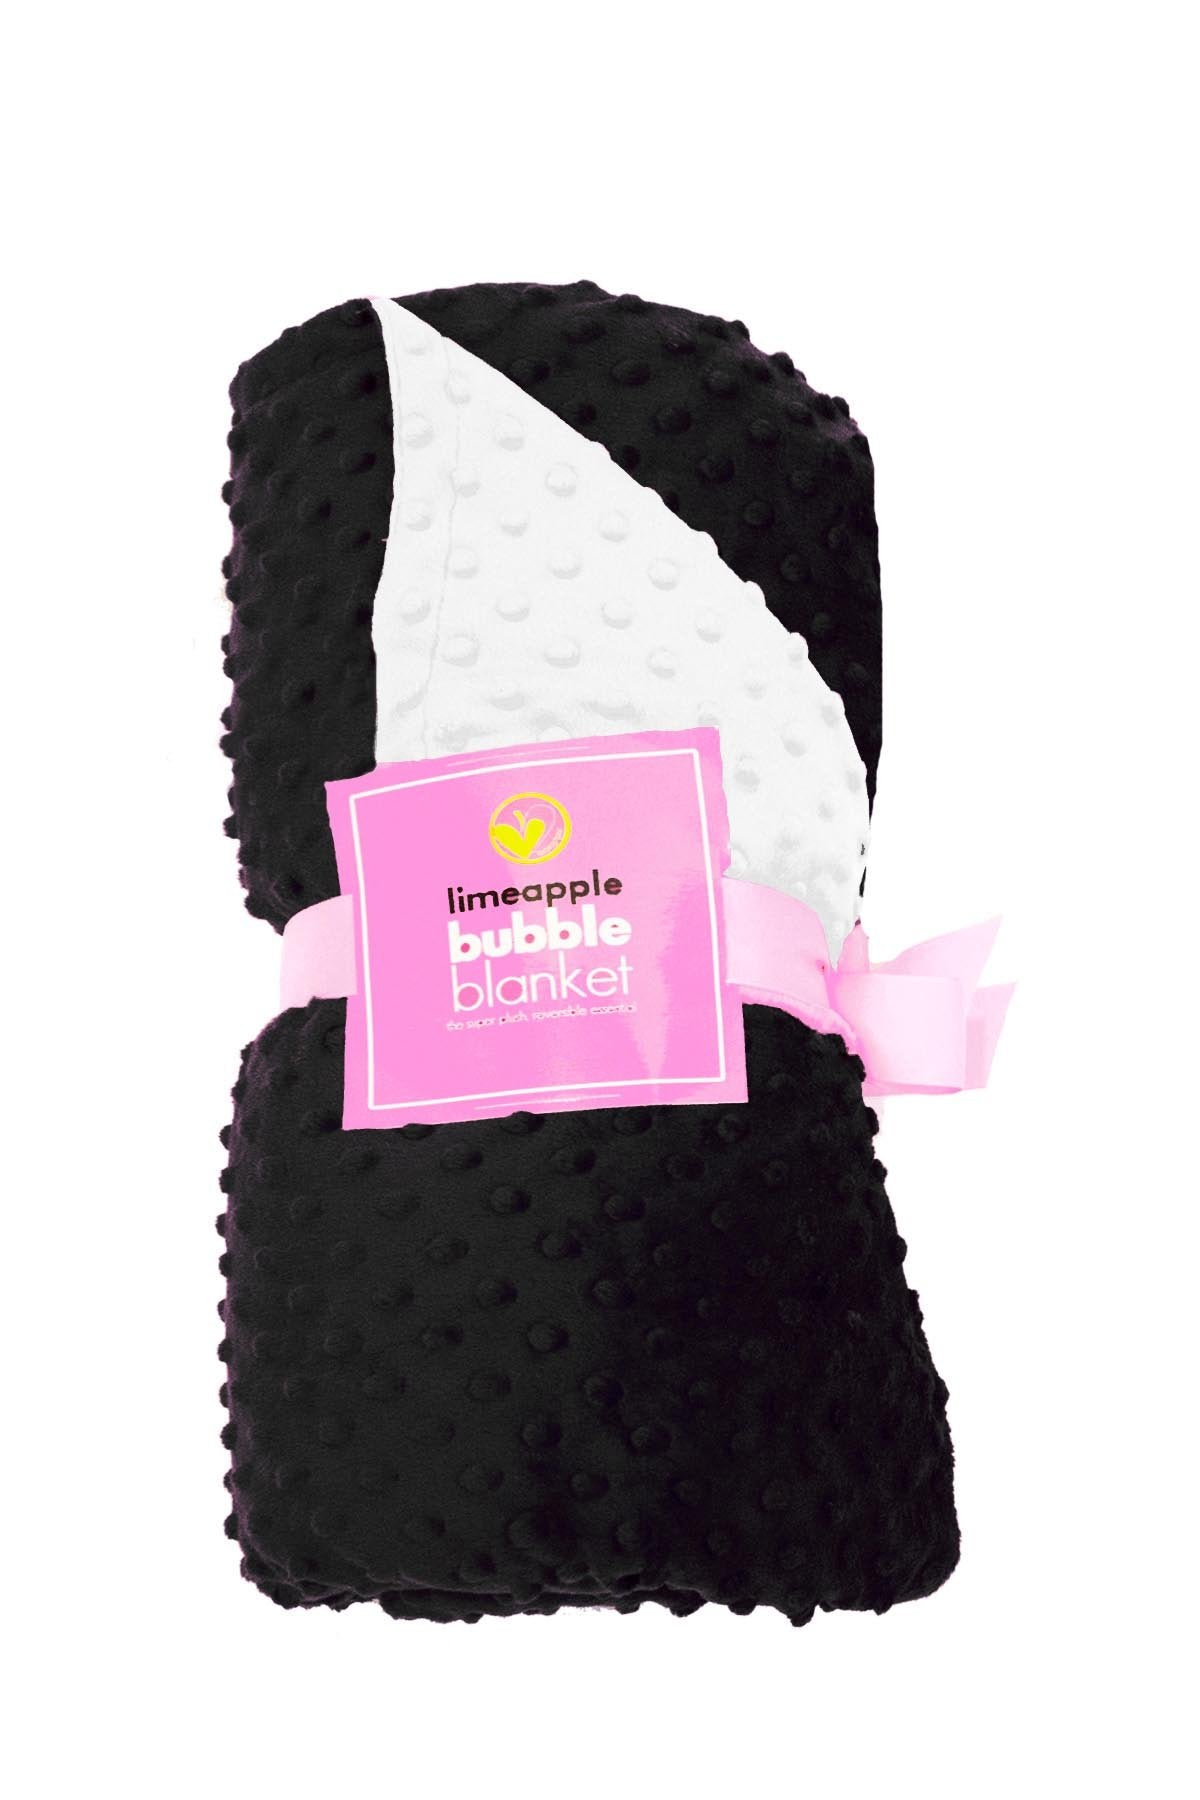 Luxe Minky Super Soft Snuggly Bubble Blanket - Black and Cream by Limeapple